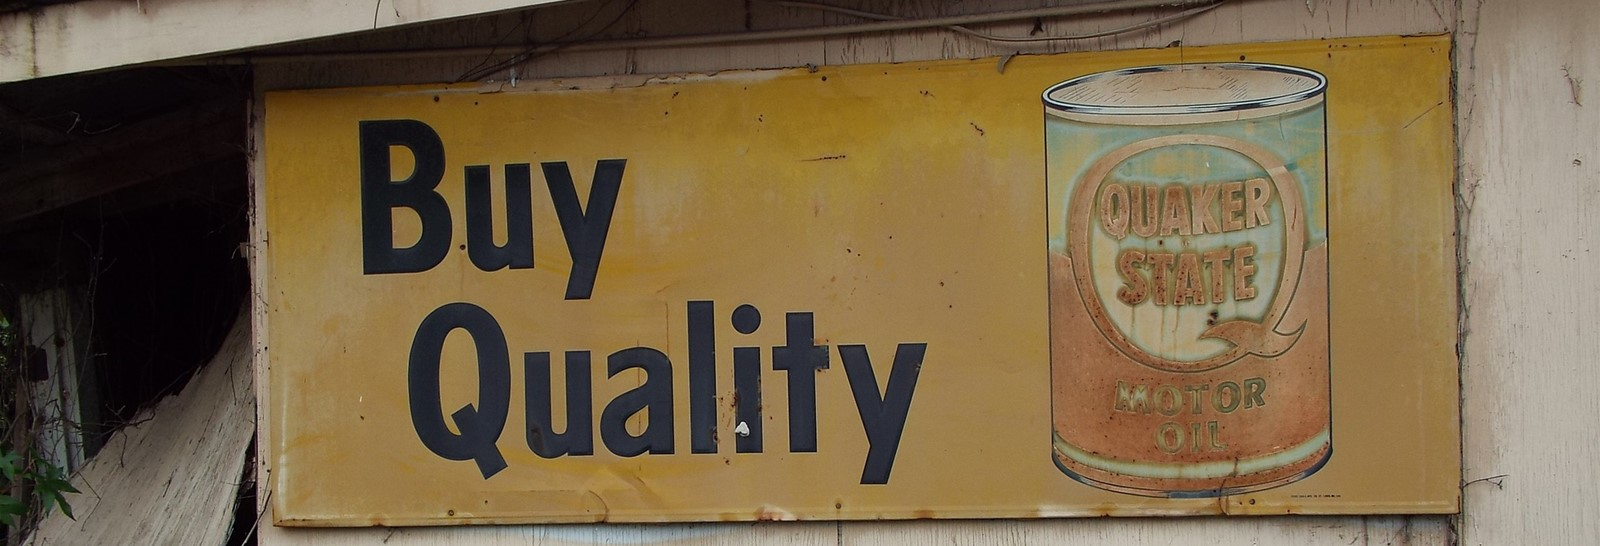 Quality signage is a sign of a quality business!